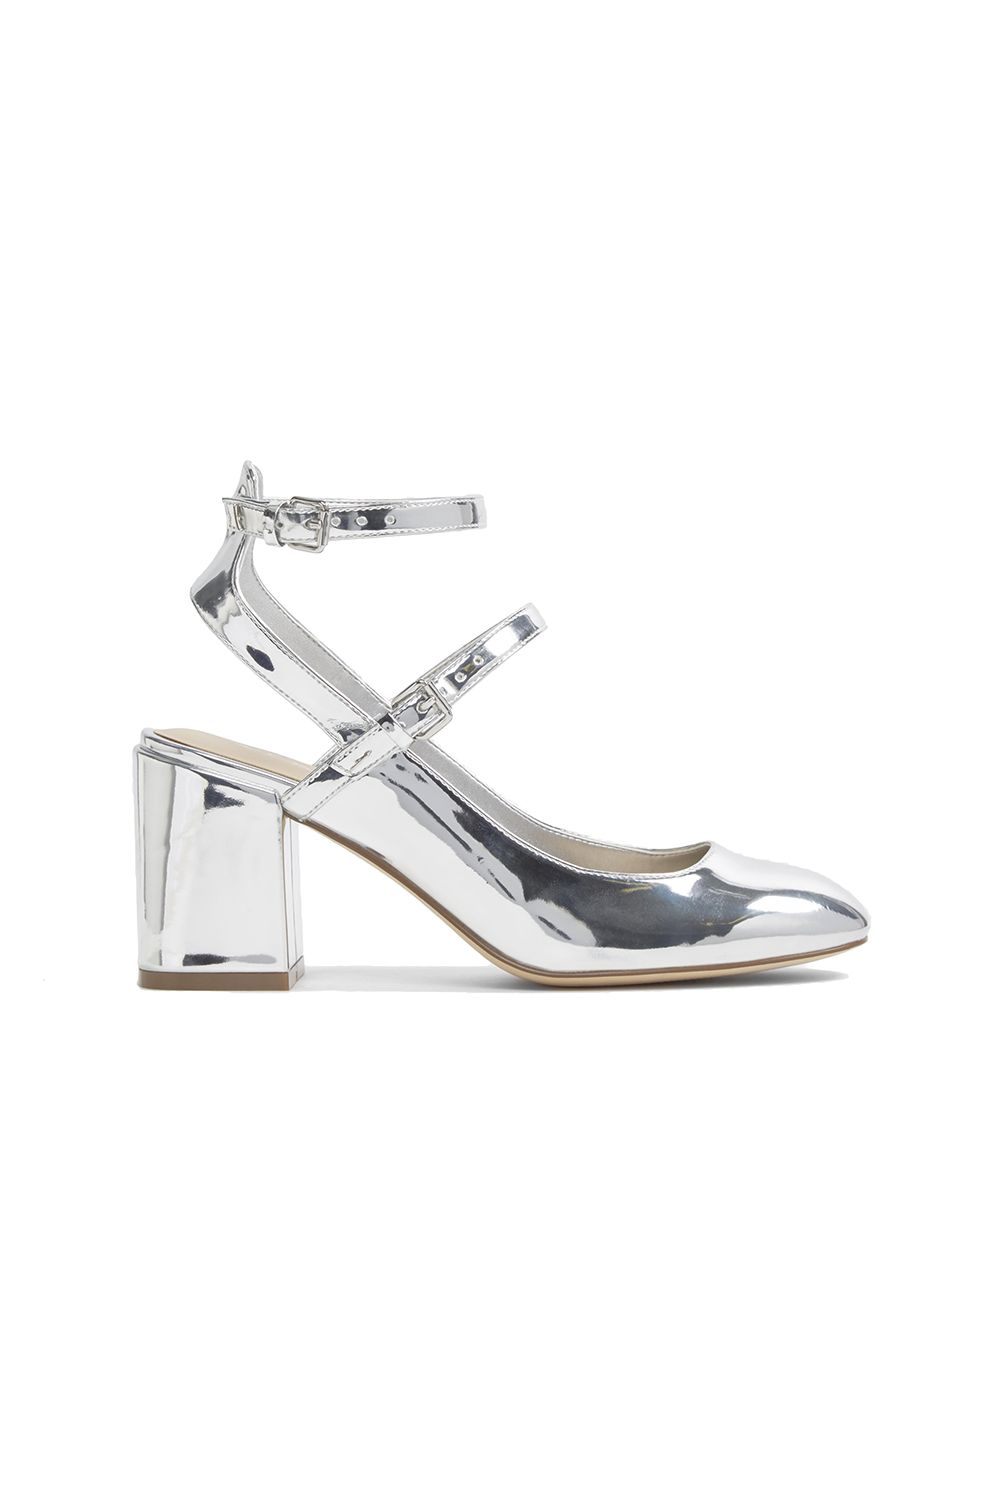 "<p>For when you haven't had the time to get a pedicure but you still want to get in on the exposed-foot fun.&nbsp&#x3B;</p><p>$75, <a href=""https://www.aldoshoes.com/us/en_US/women/footwear/heels/Pergine-Metallic/p/49898210-81"" target=""_blank"" data-tracking-id=""recirc-text-link"">aldoshoes.com</a>.</p>"